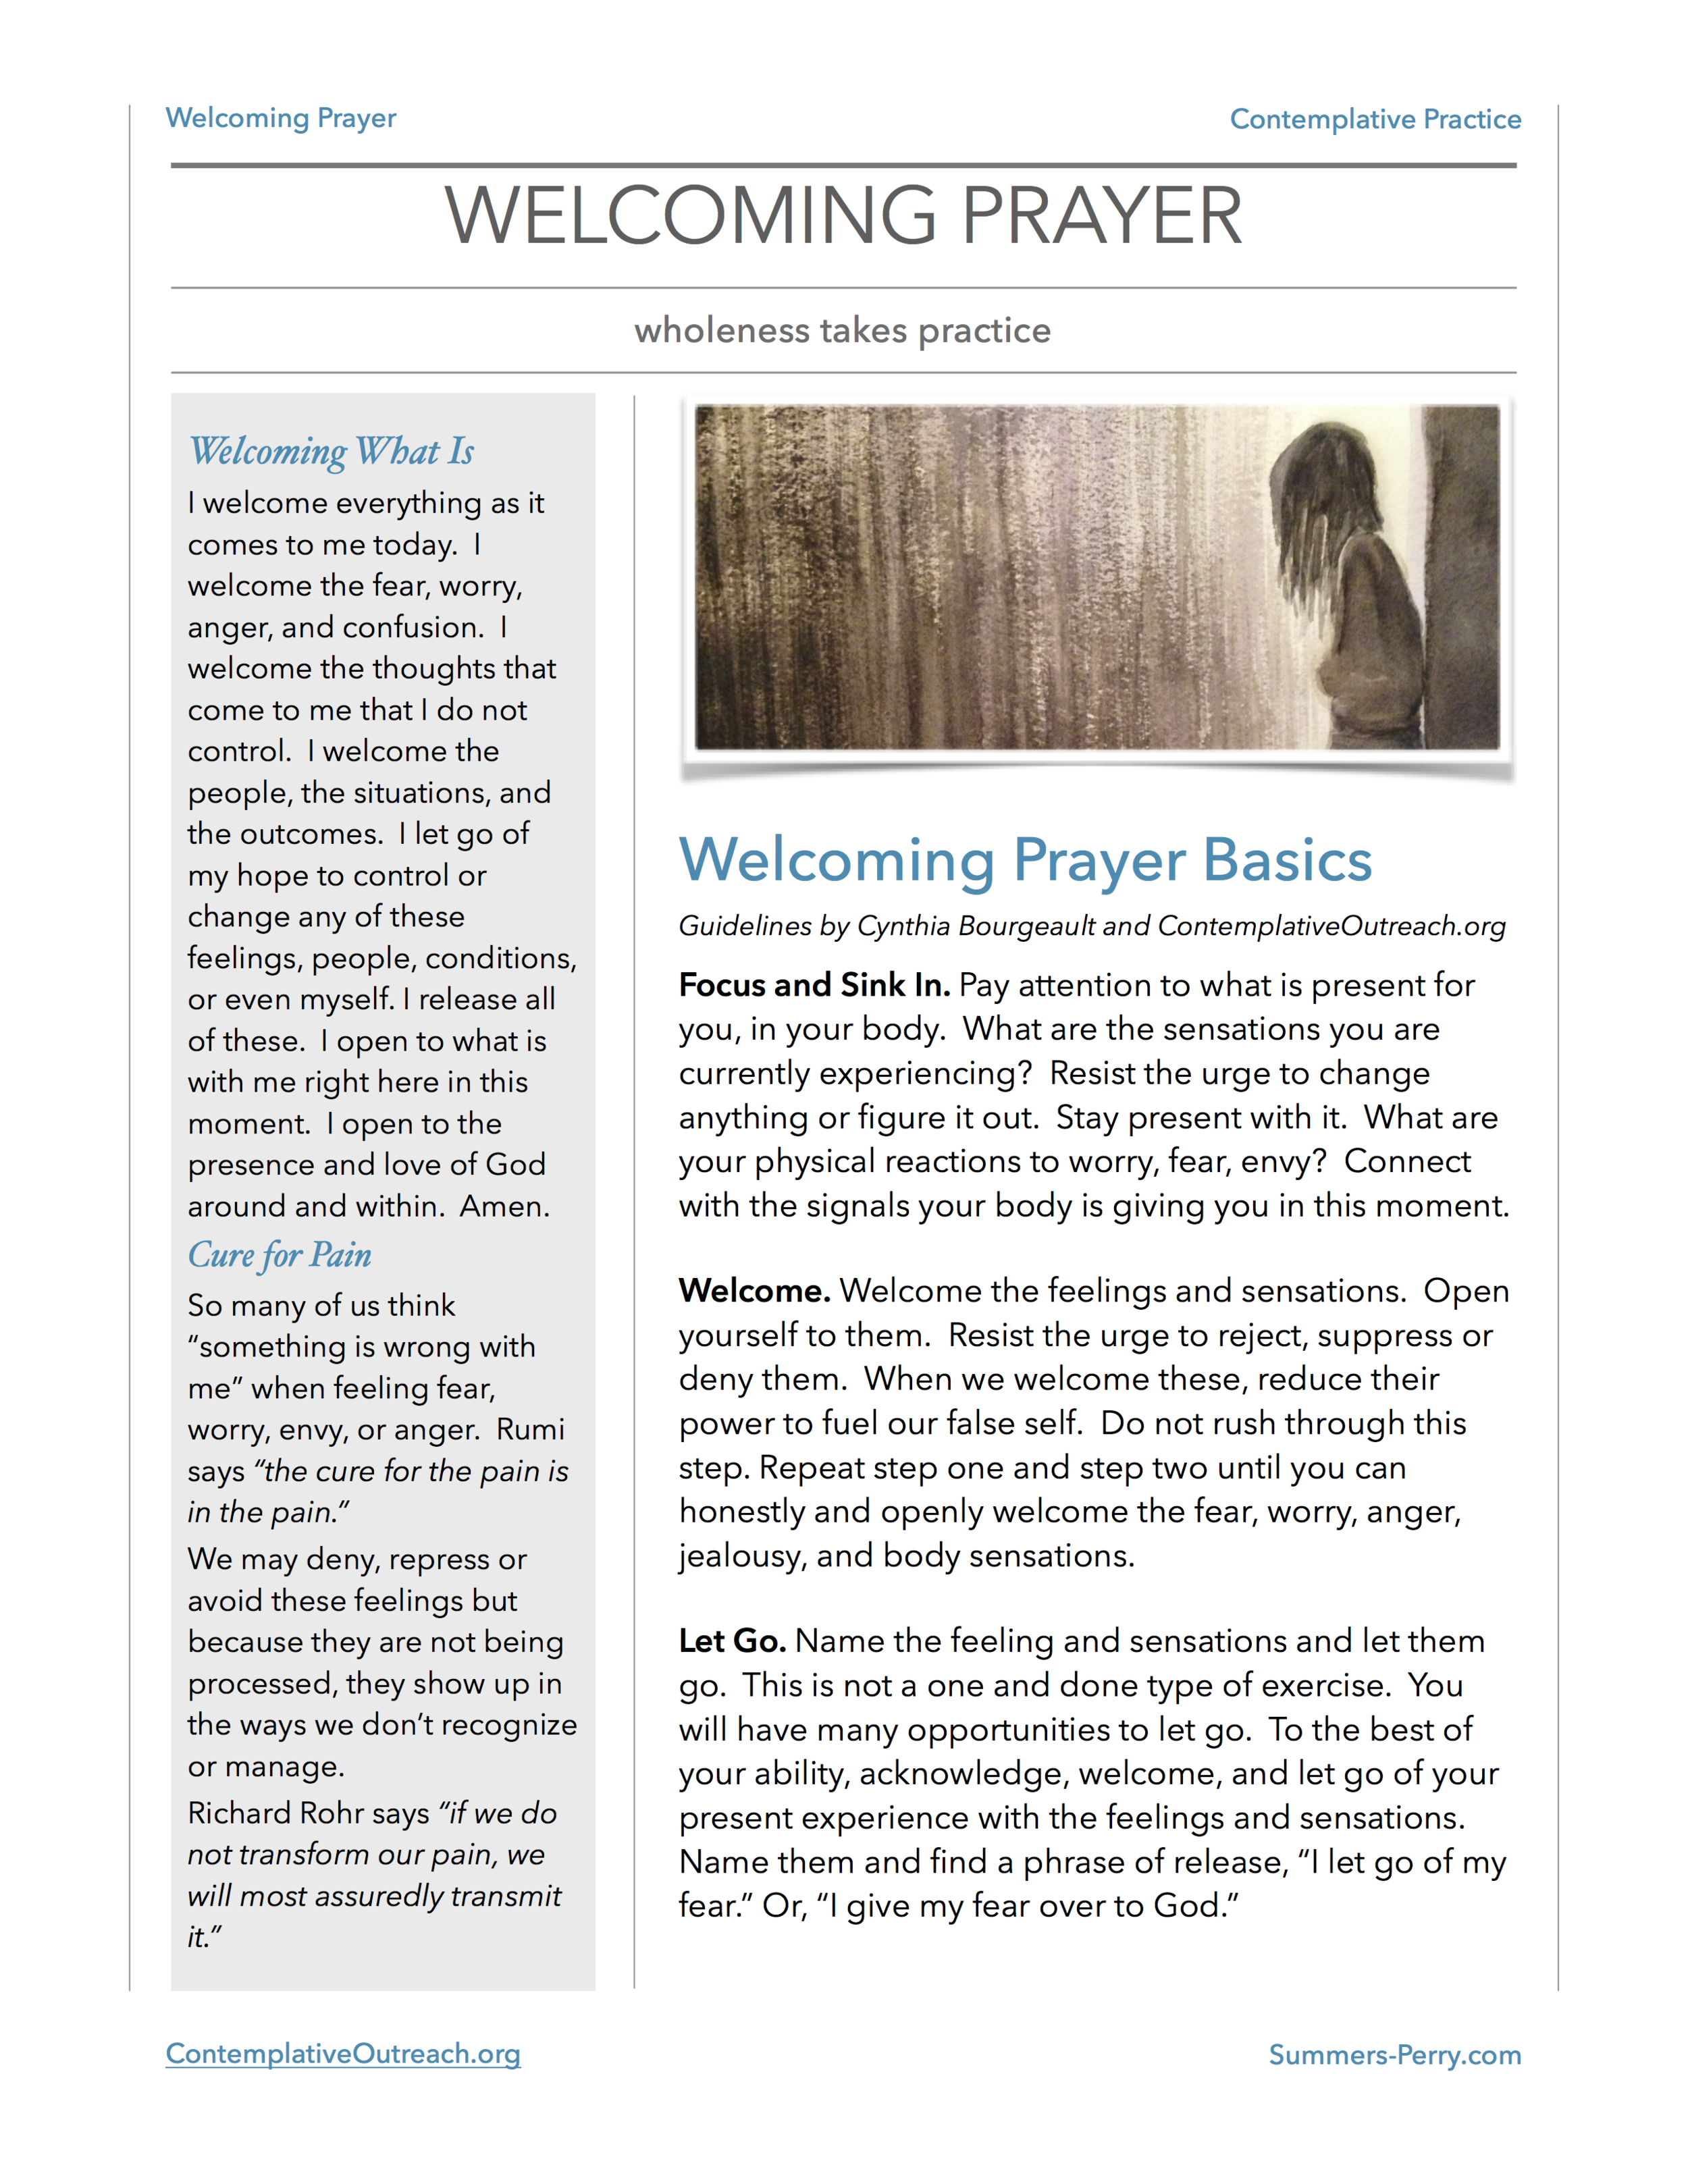 Welcoming Prayer